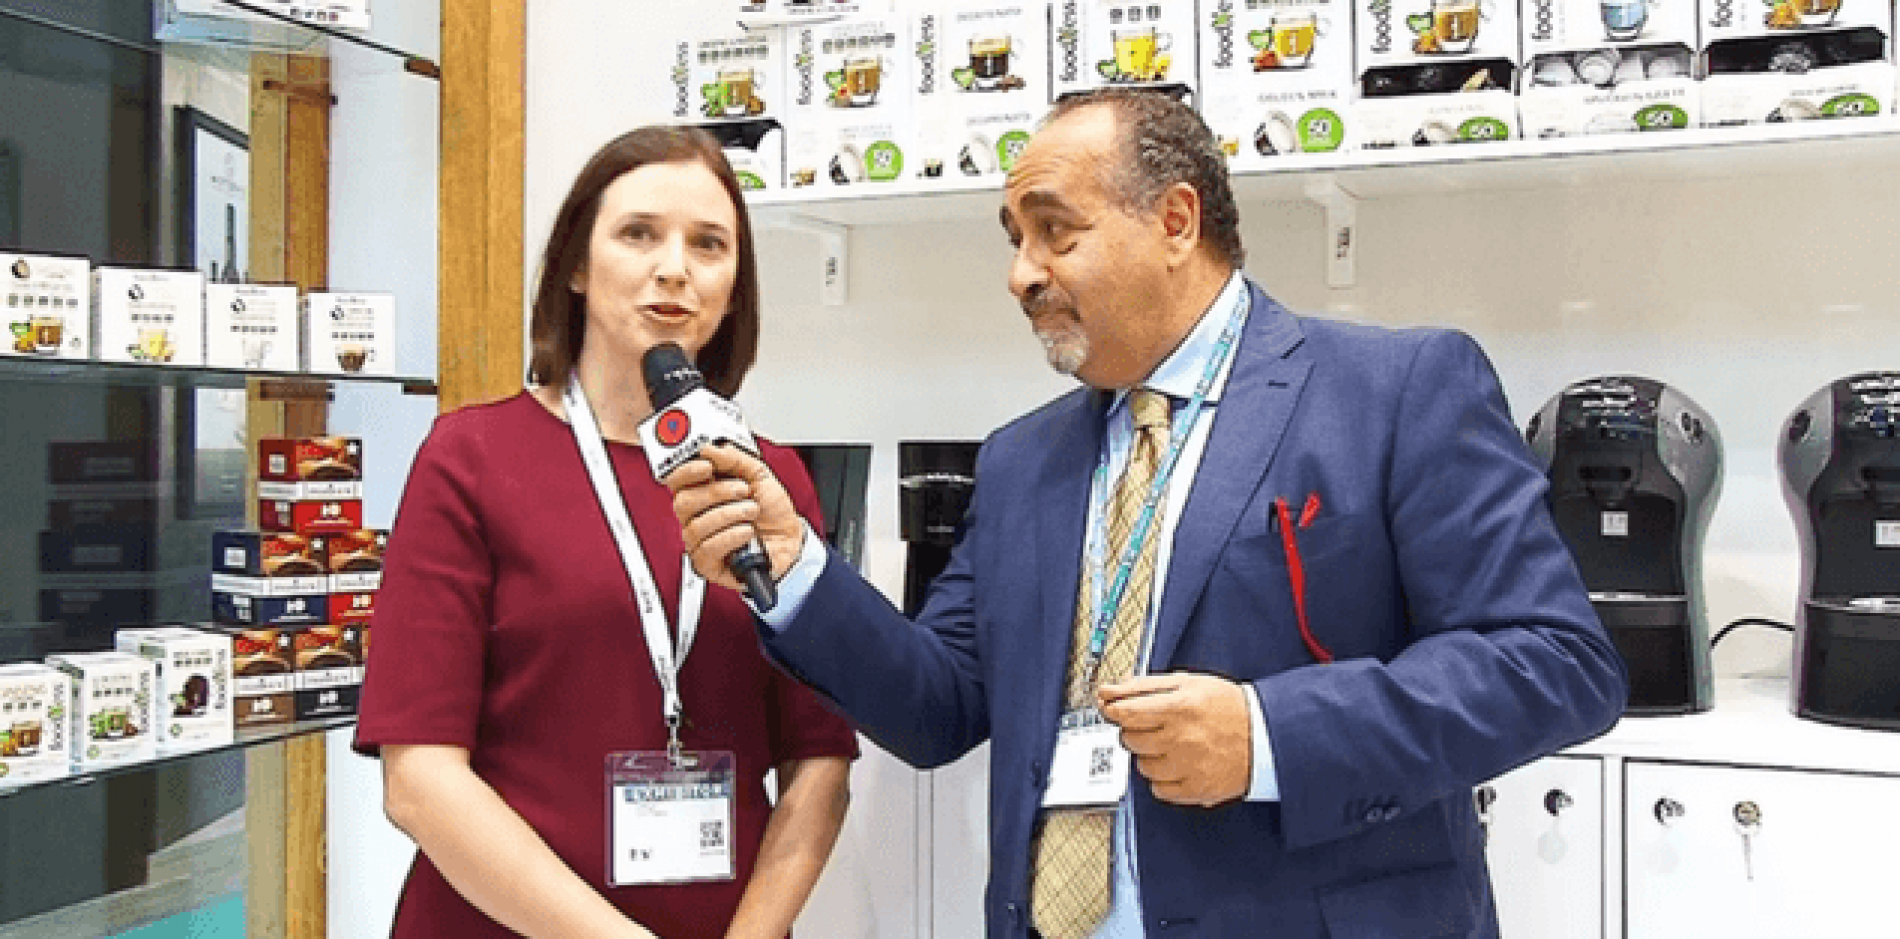 HorecaTv.it Intervista a Host con S. Lusetti di Foodness